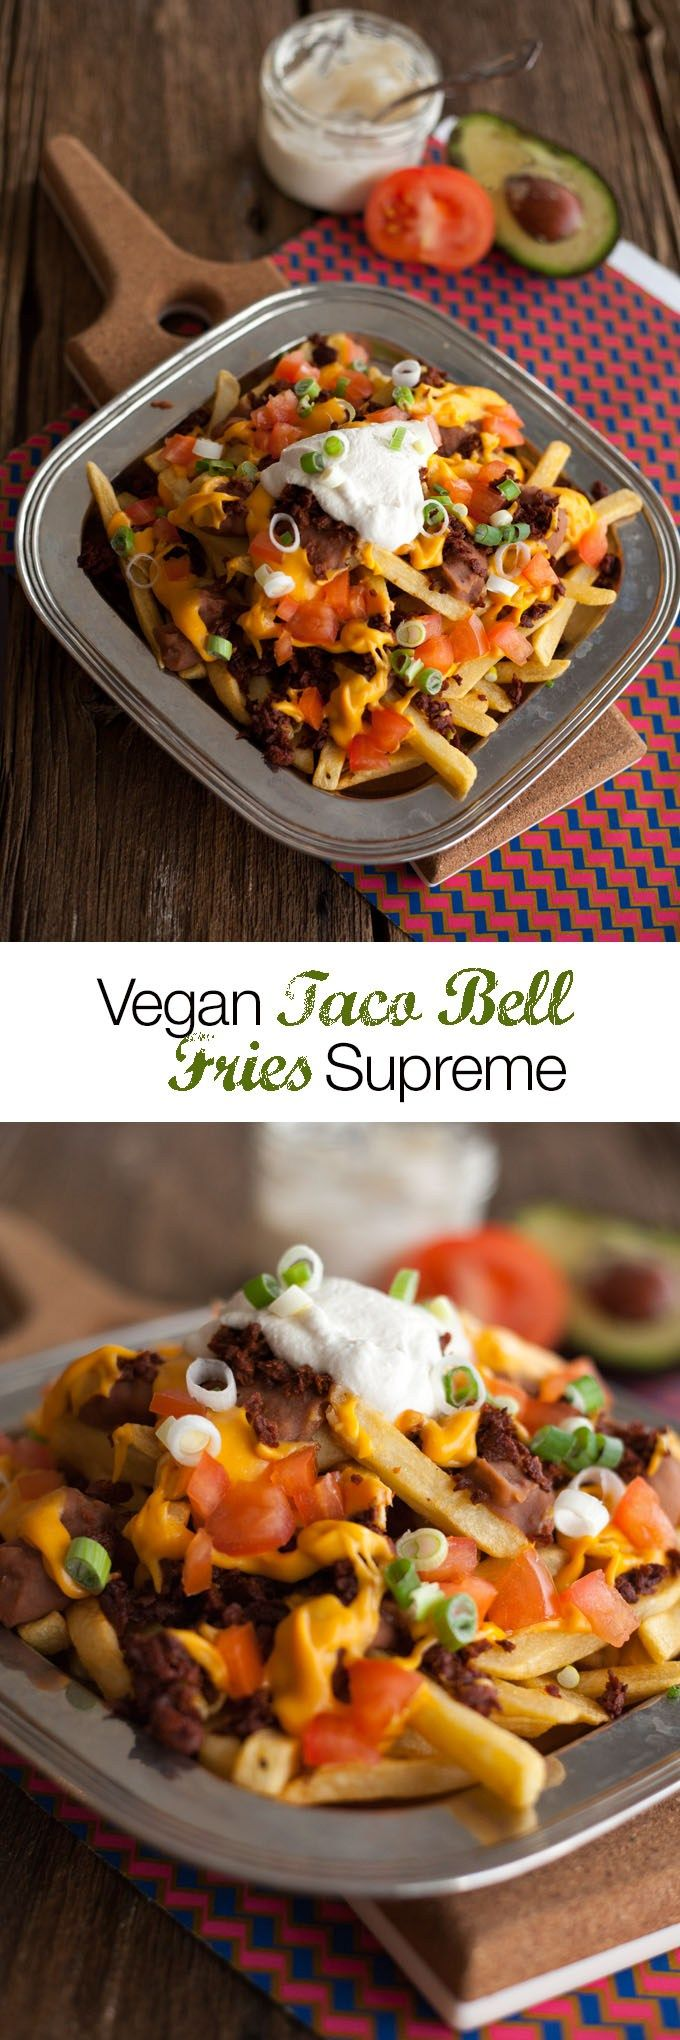 Fries Supreme is a delicious dish served at Taco Bell restaurants. These amazing vegan fries are covered with seasoned vegan ground beef or chorizo, warm zesty nacho cheese sauce made of carrots and potatoes, diced ripe tomatoes, green onions, and cool vegan sour cream. VEGAN